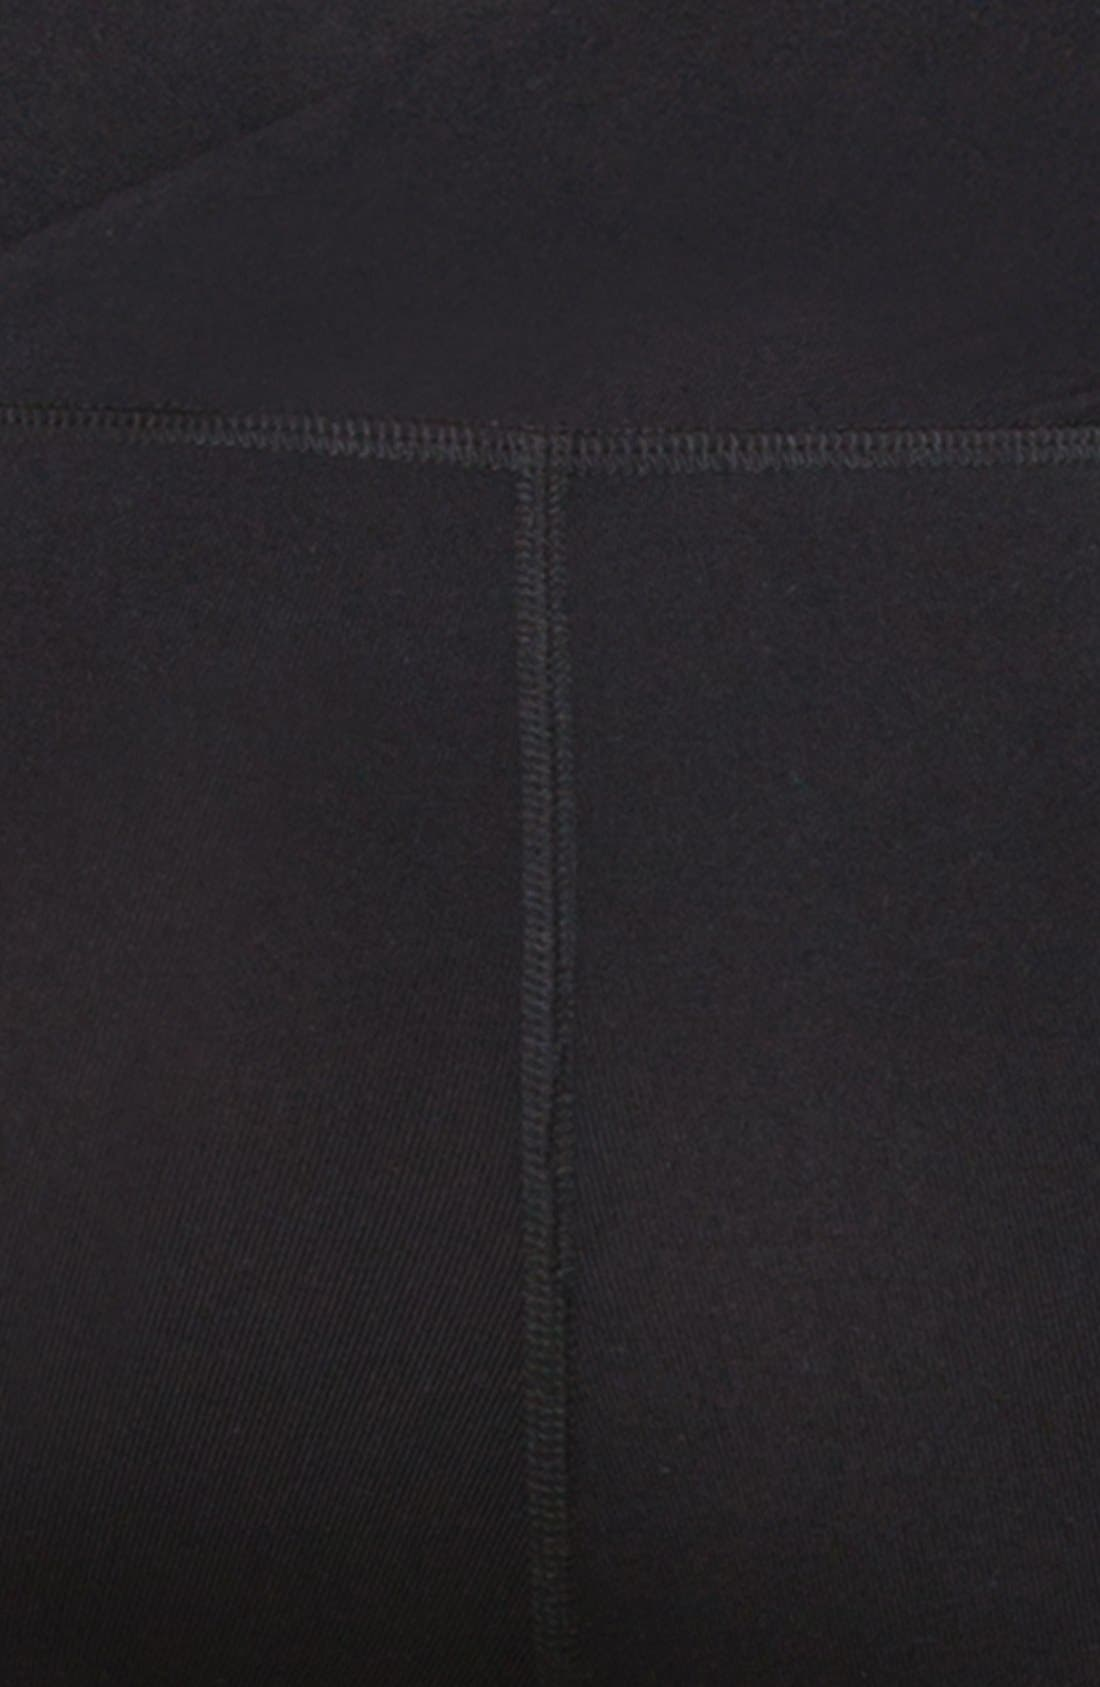 Active Maternity Pants with Crossover Panel,                             Alternate thumbnail 4, color,                             001